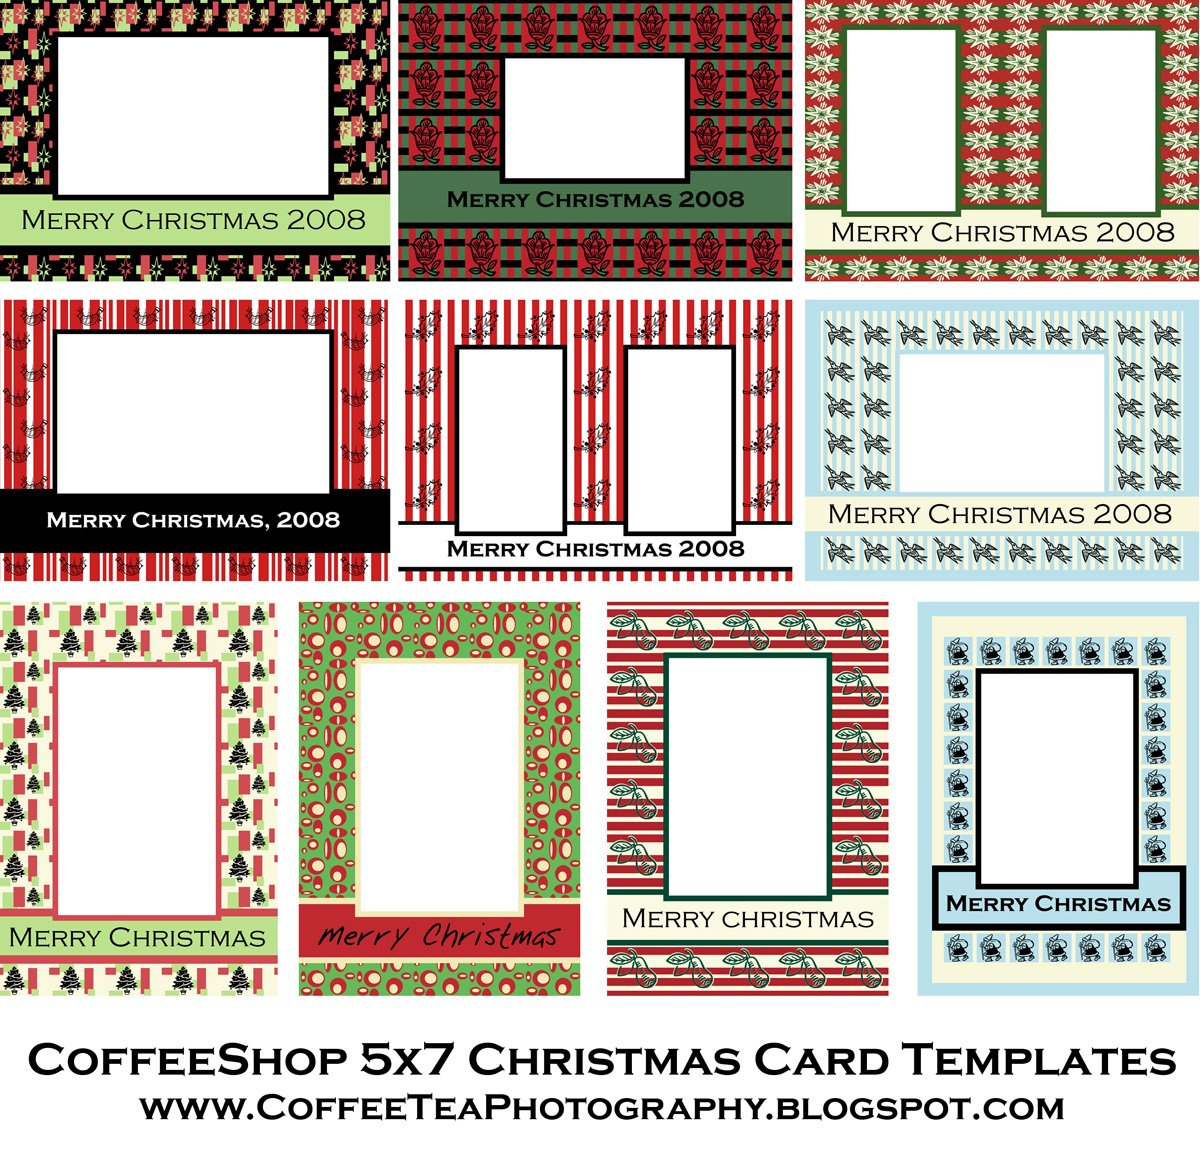 FREE CoffeeShop Christmas Card Templates!